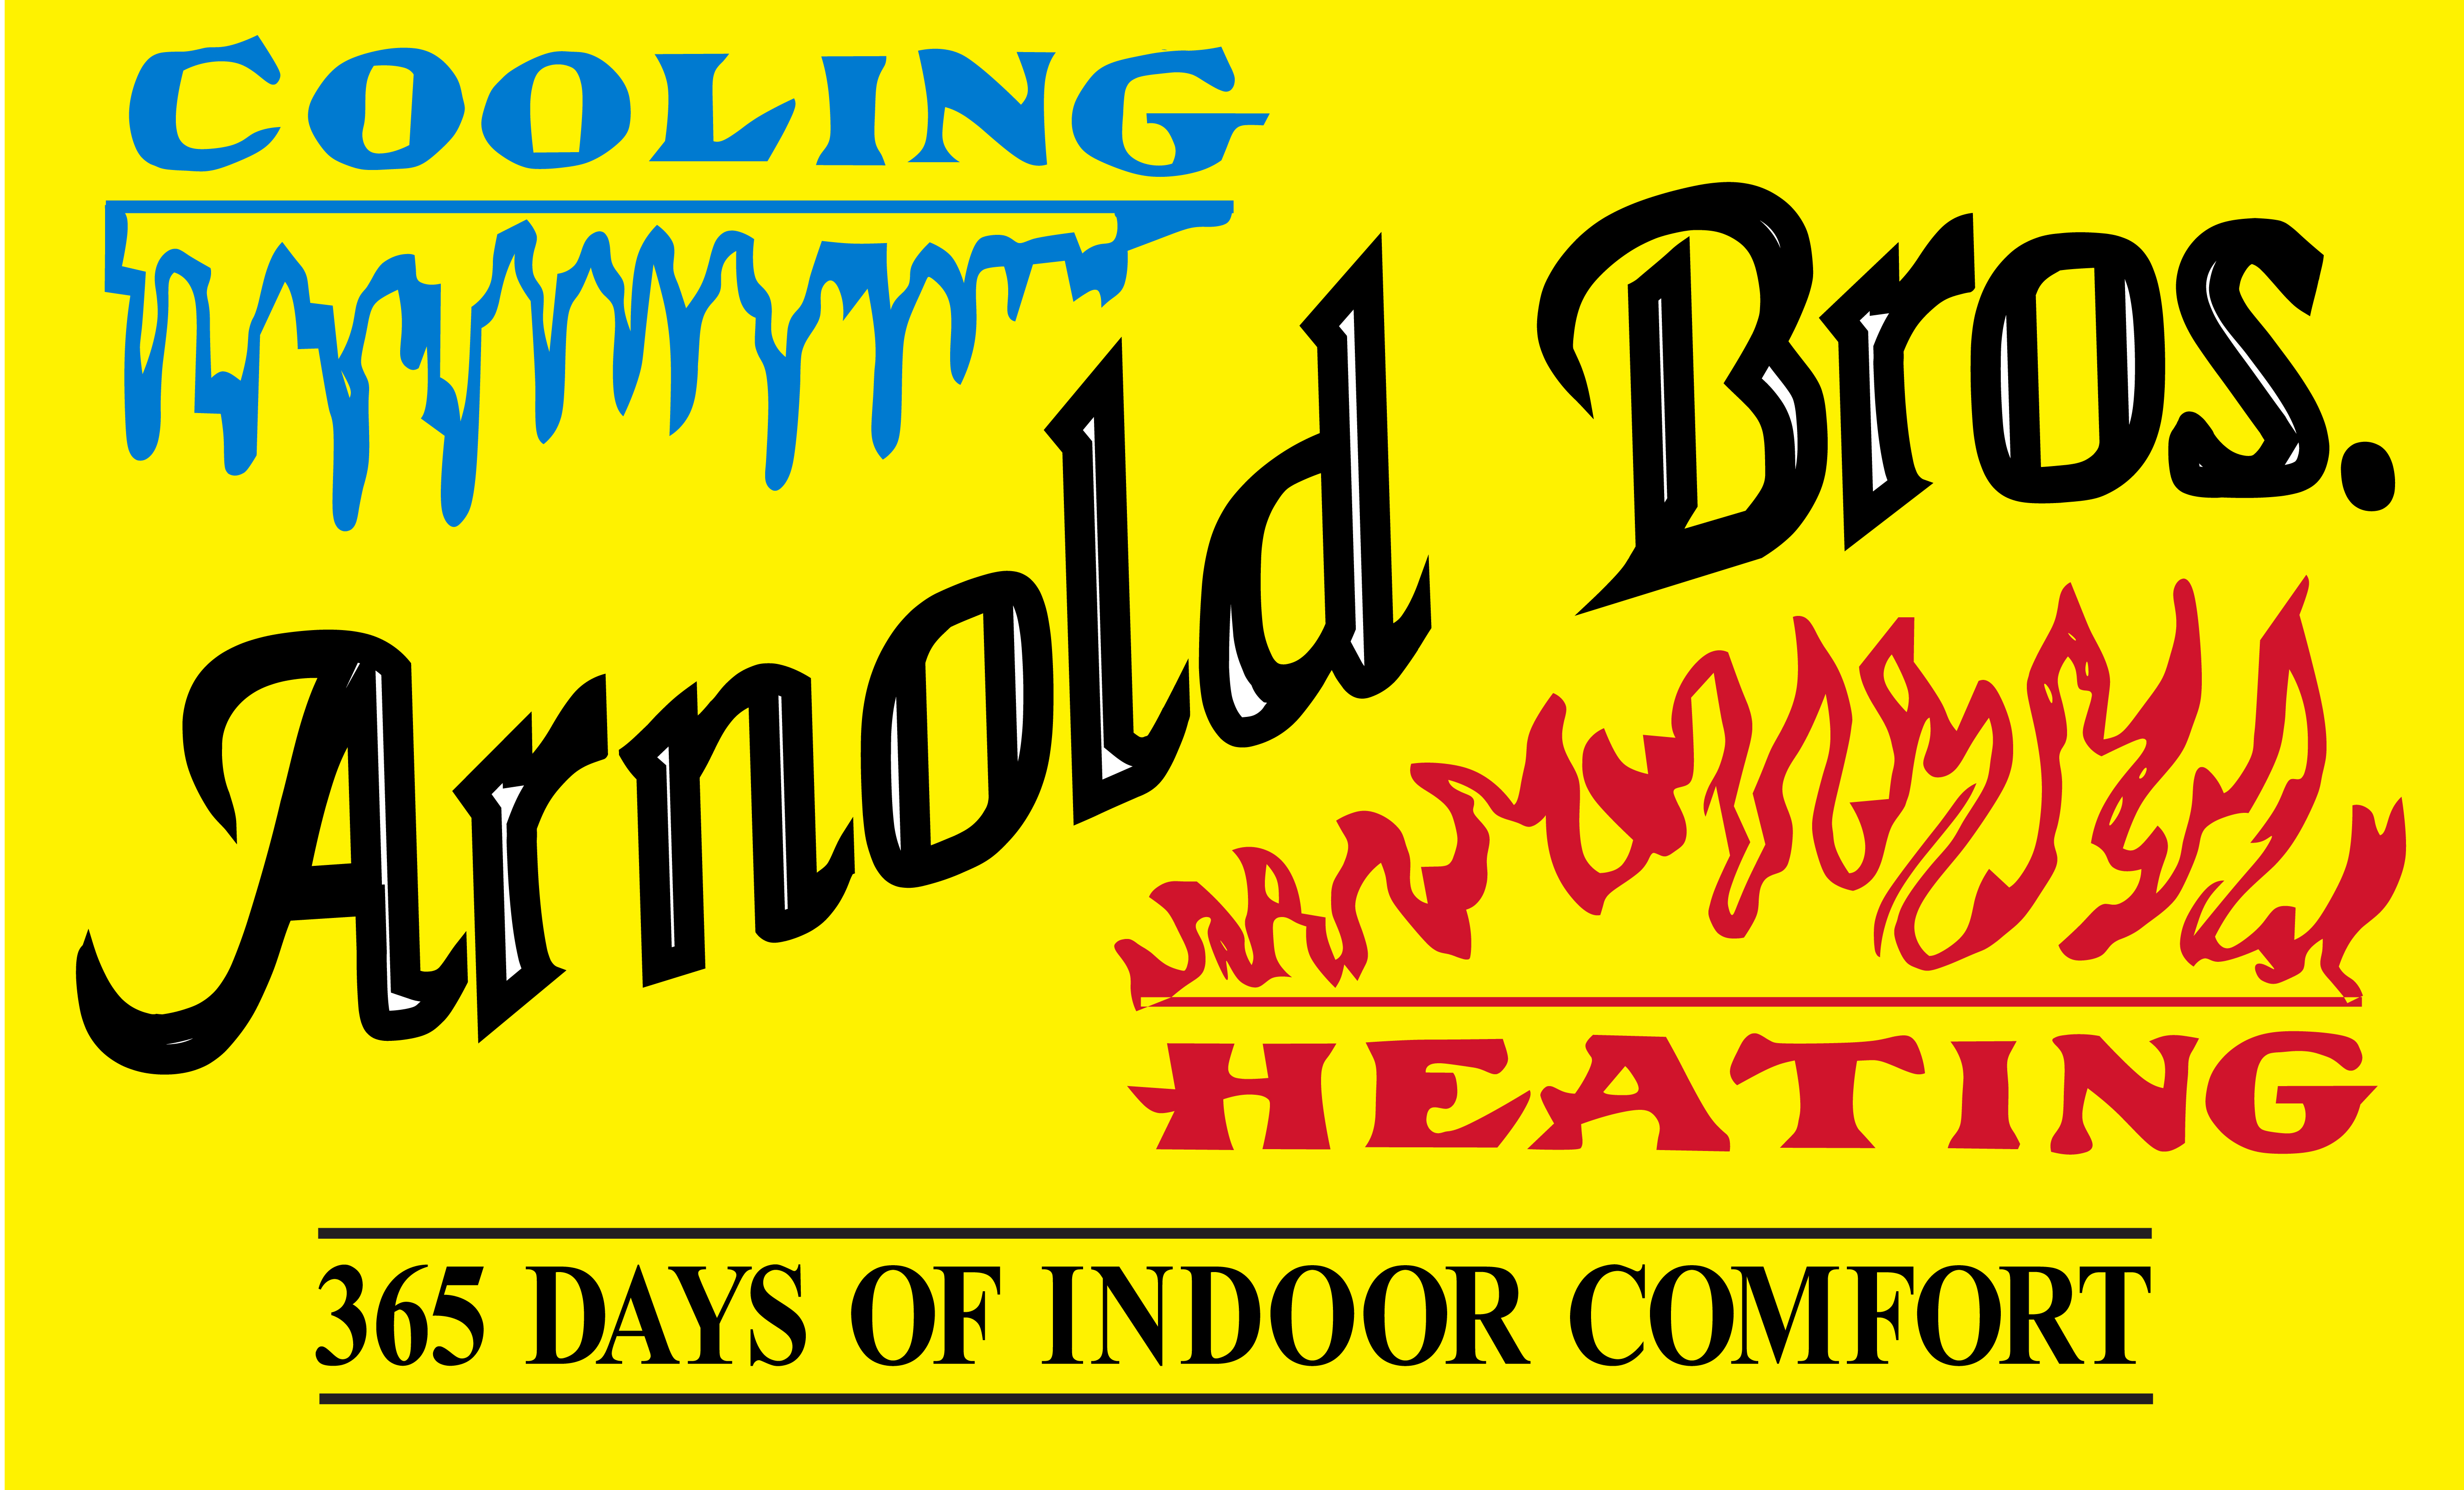 Arnold Brothers Heating & Cooling